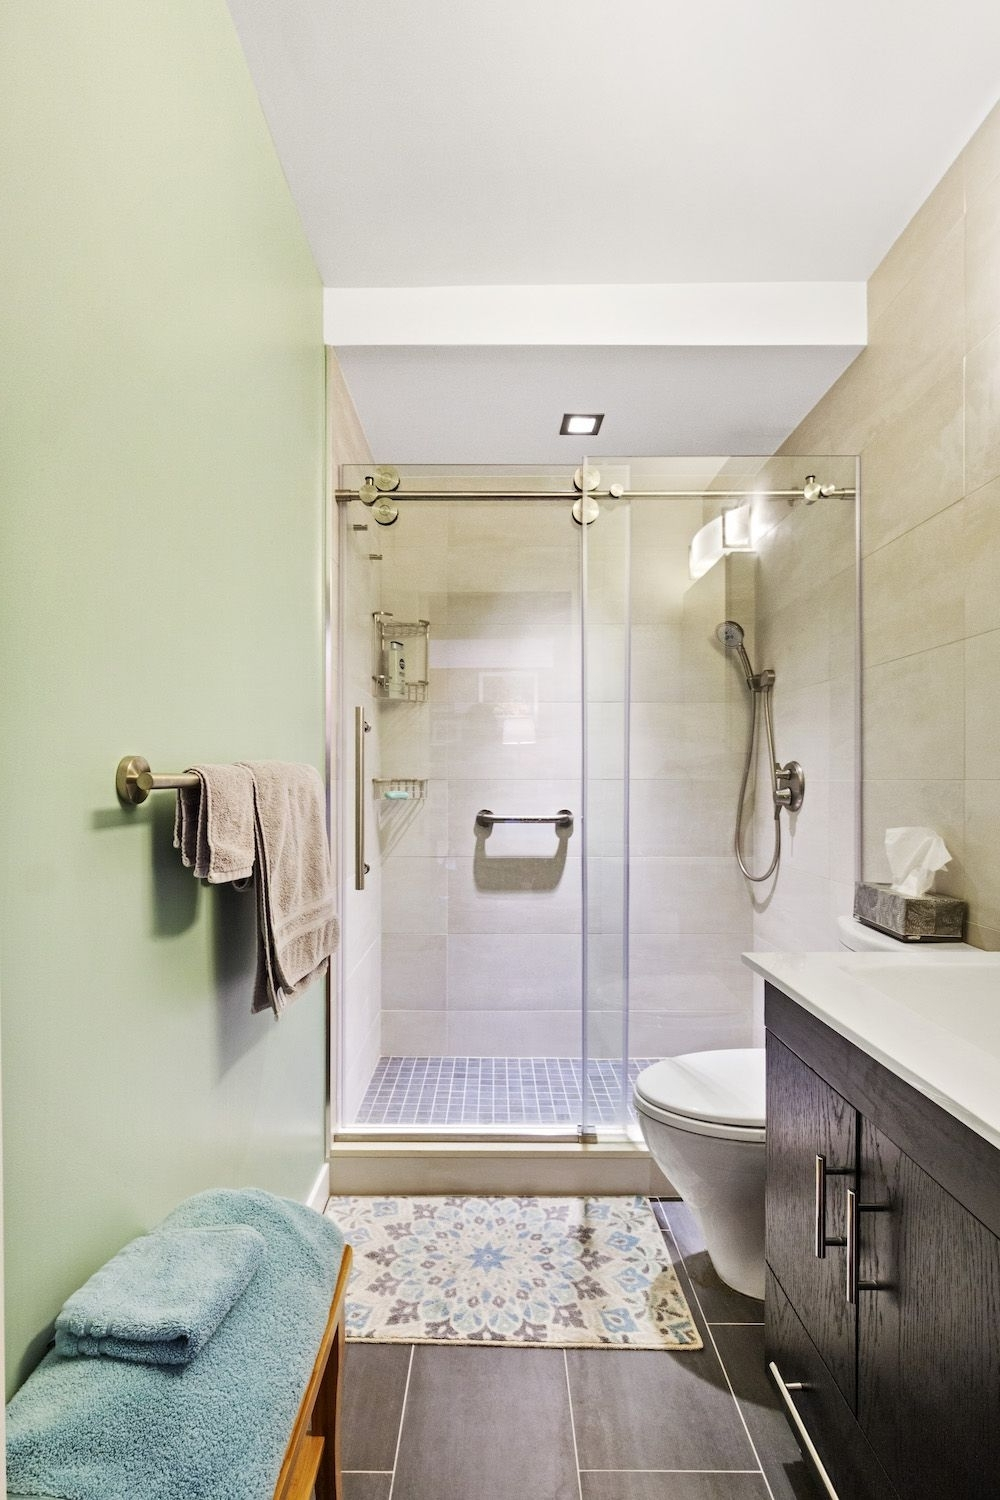 A Small, Windowless Bathroom Expands After Renovating With Small Windowless Bathroom Decorating